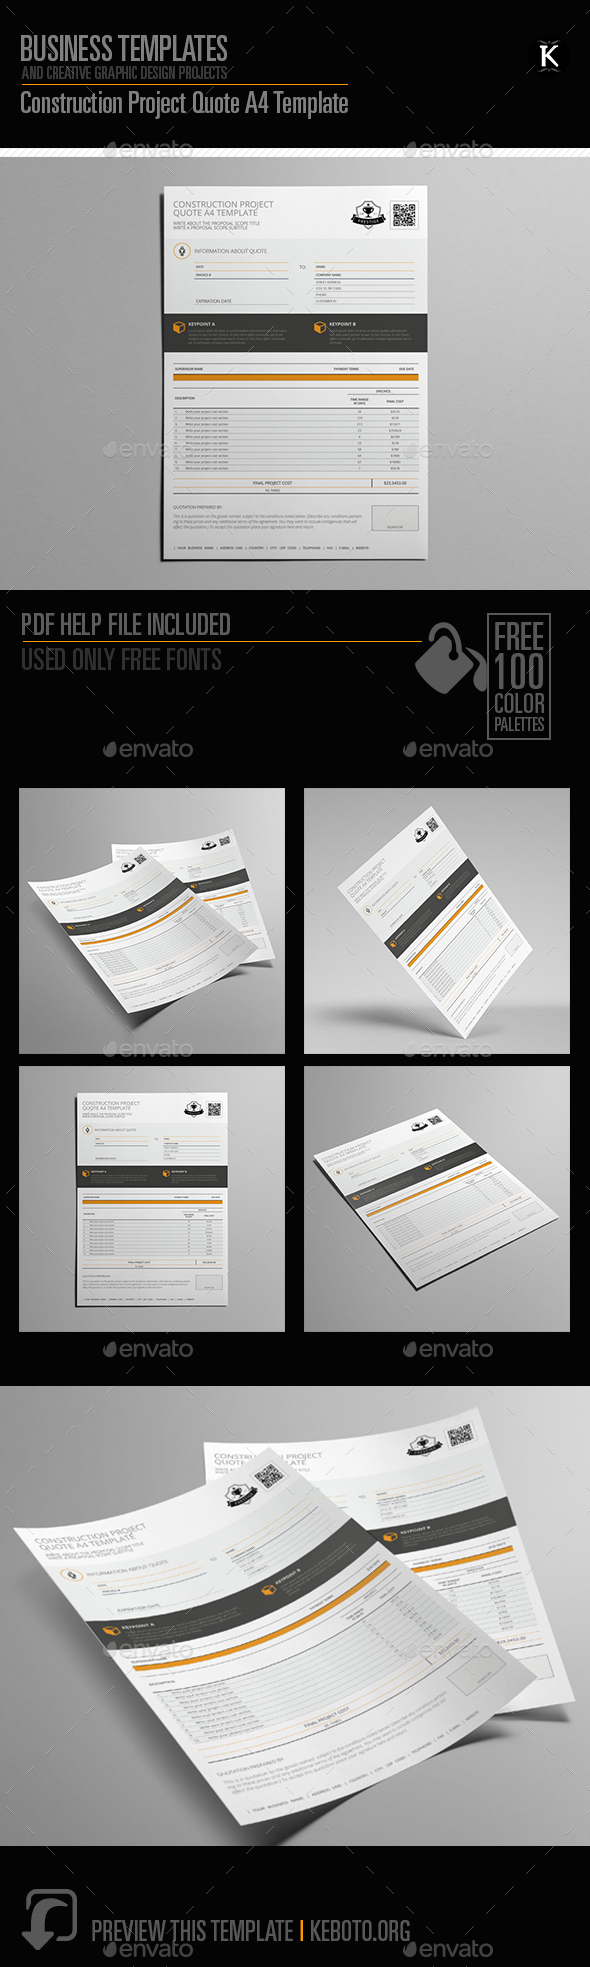 Construction Project Quote A4 Template - Miscellaneous Print Templates